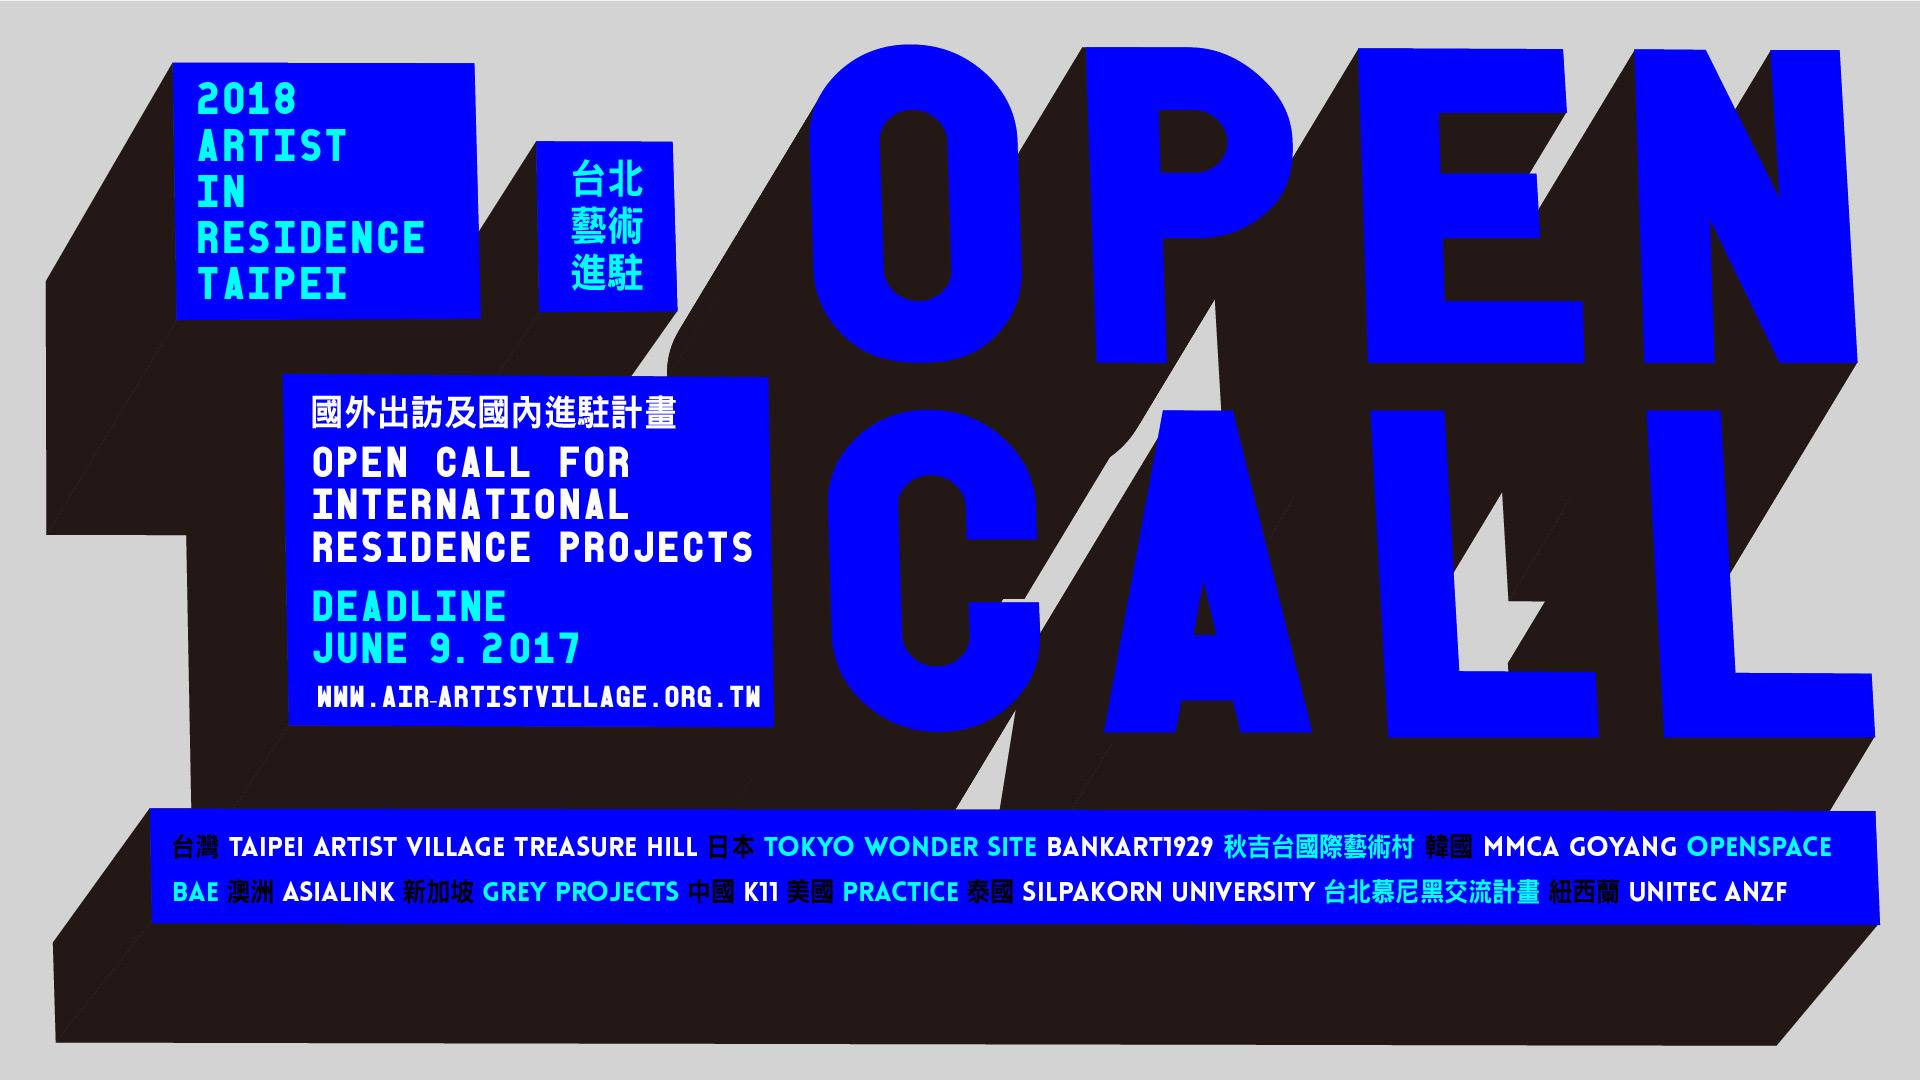 2018 AIR Taipei: OPEN CALL FOR INTERNATIONAL RESIDENCE PROJECT (Deadline: June 9, 2017)